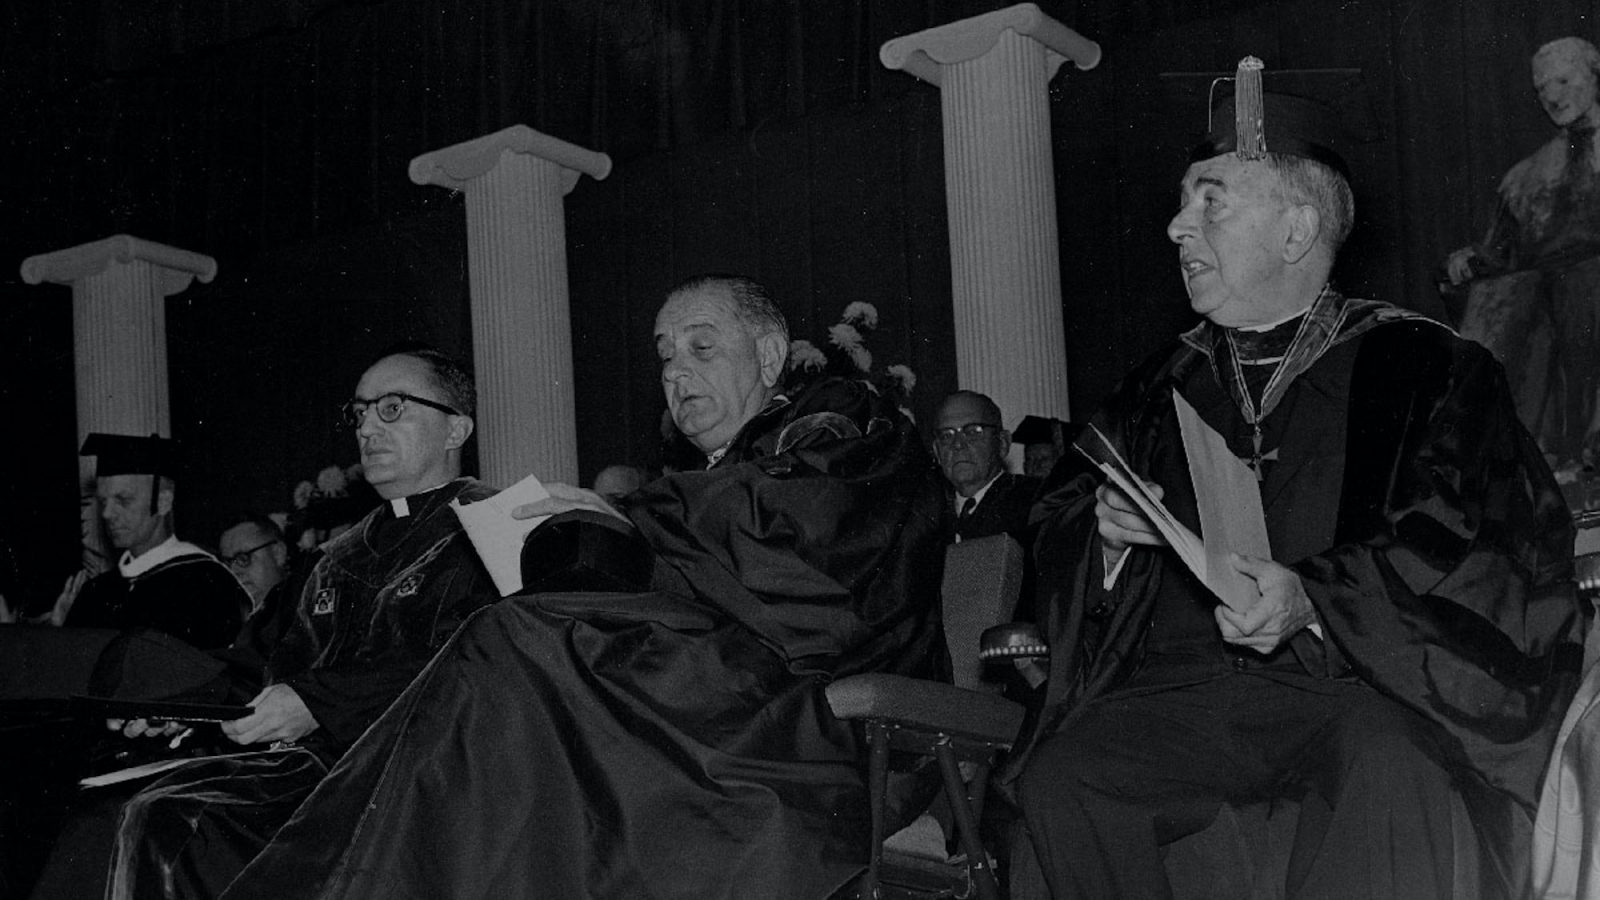 A black and white photo of President Lyndon Johnson at a Georgetown ceremony with faculty in academic robes